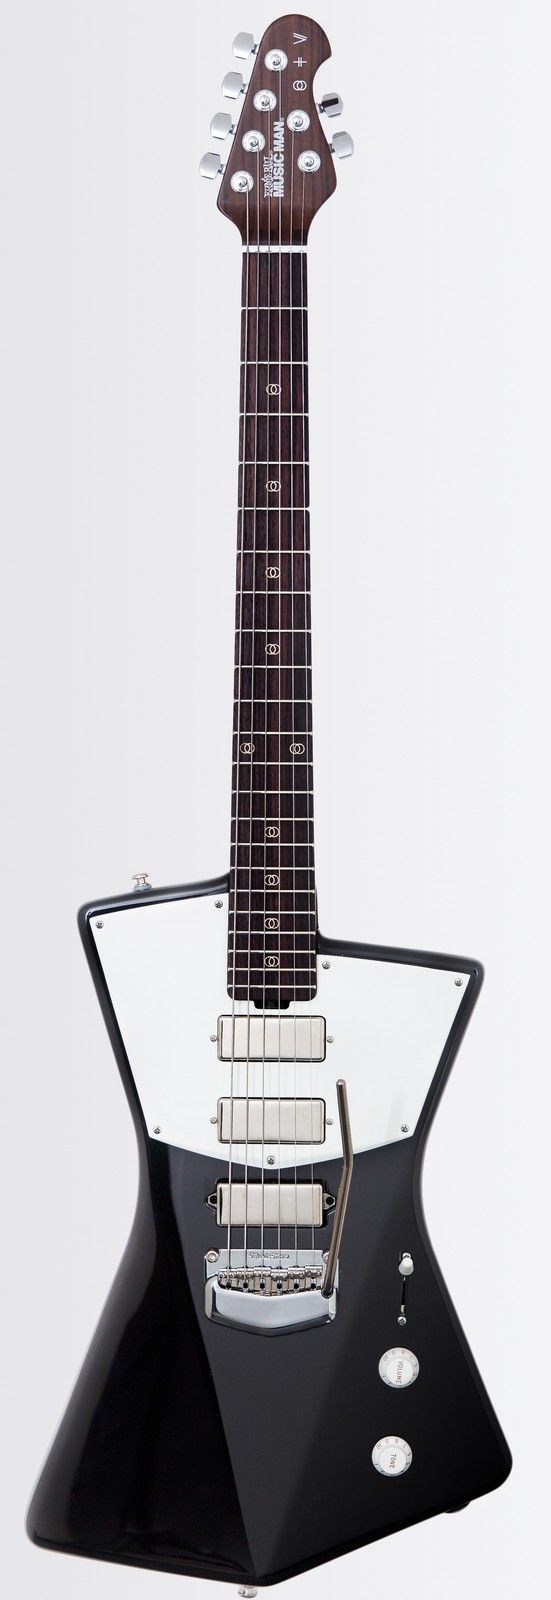 Ernie Ball Music Man St. Vincent Signature Guitar Grammy award winning musician, songwriter, and guitarist St. Vincent is the latest edition to the Music Man family. This unique design was created by